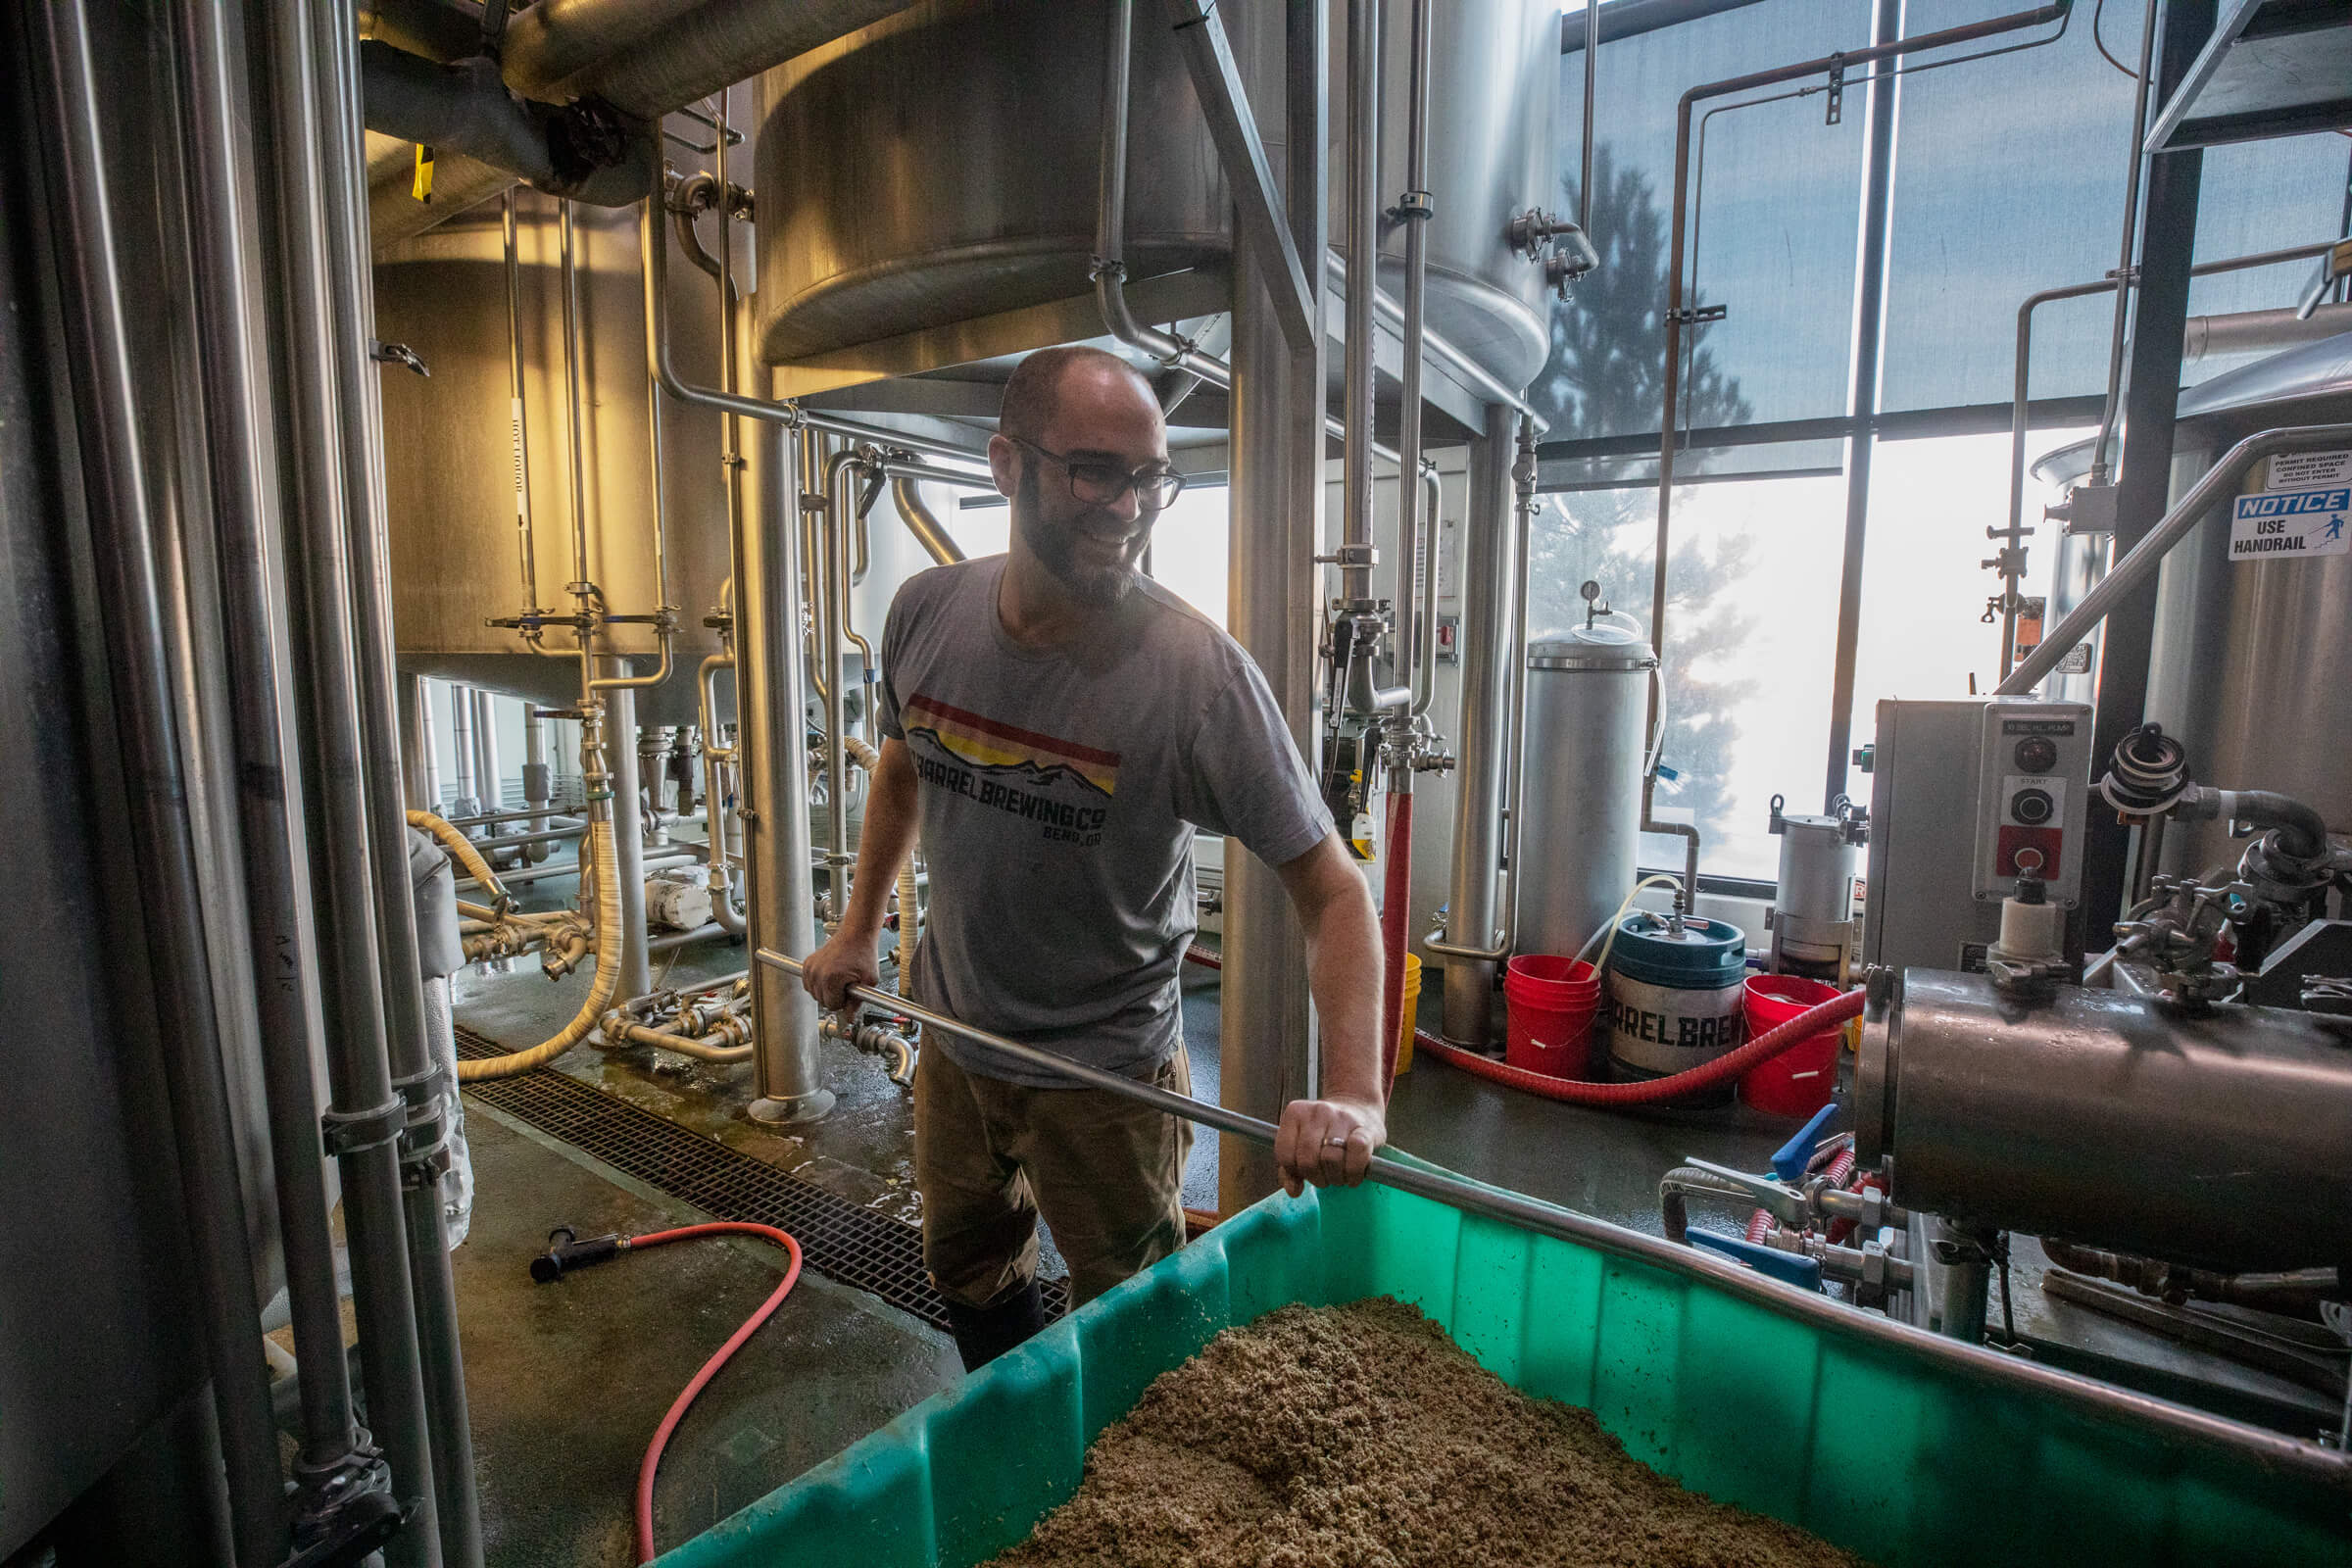 10 Barrel Brewing Co. Sustainability